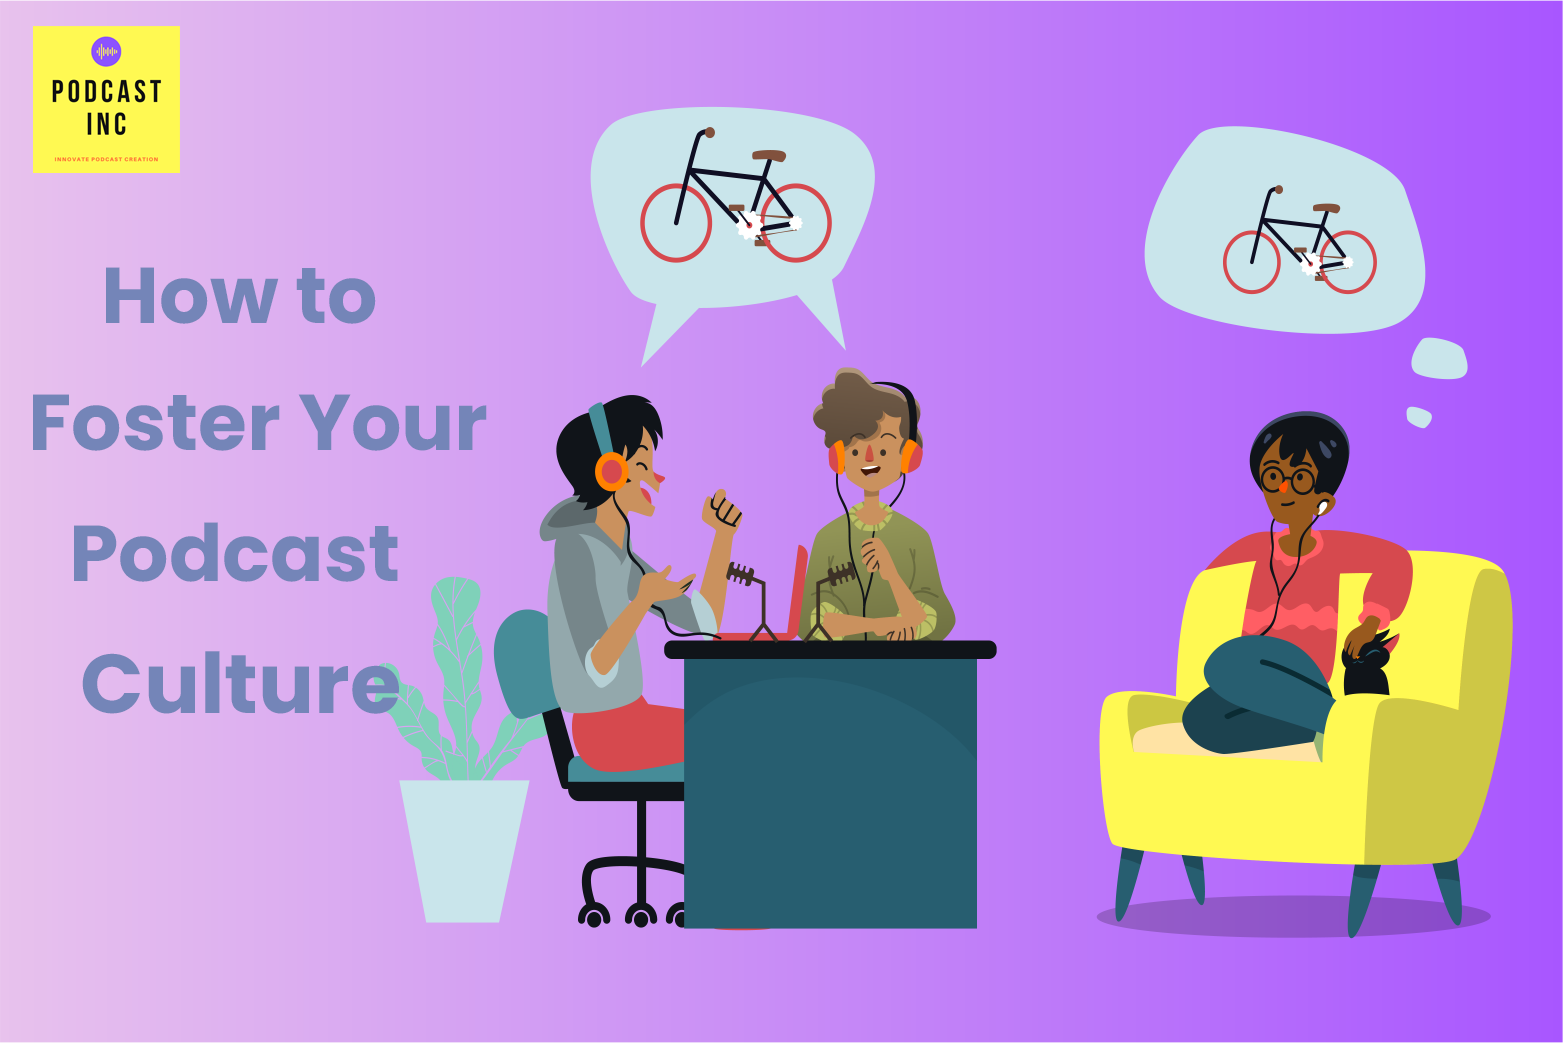 How to Foster Your Podcast Culture